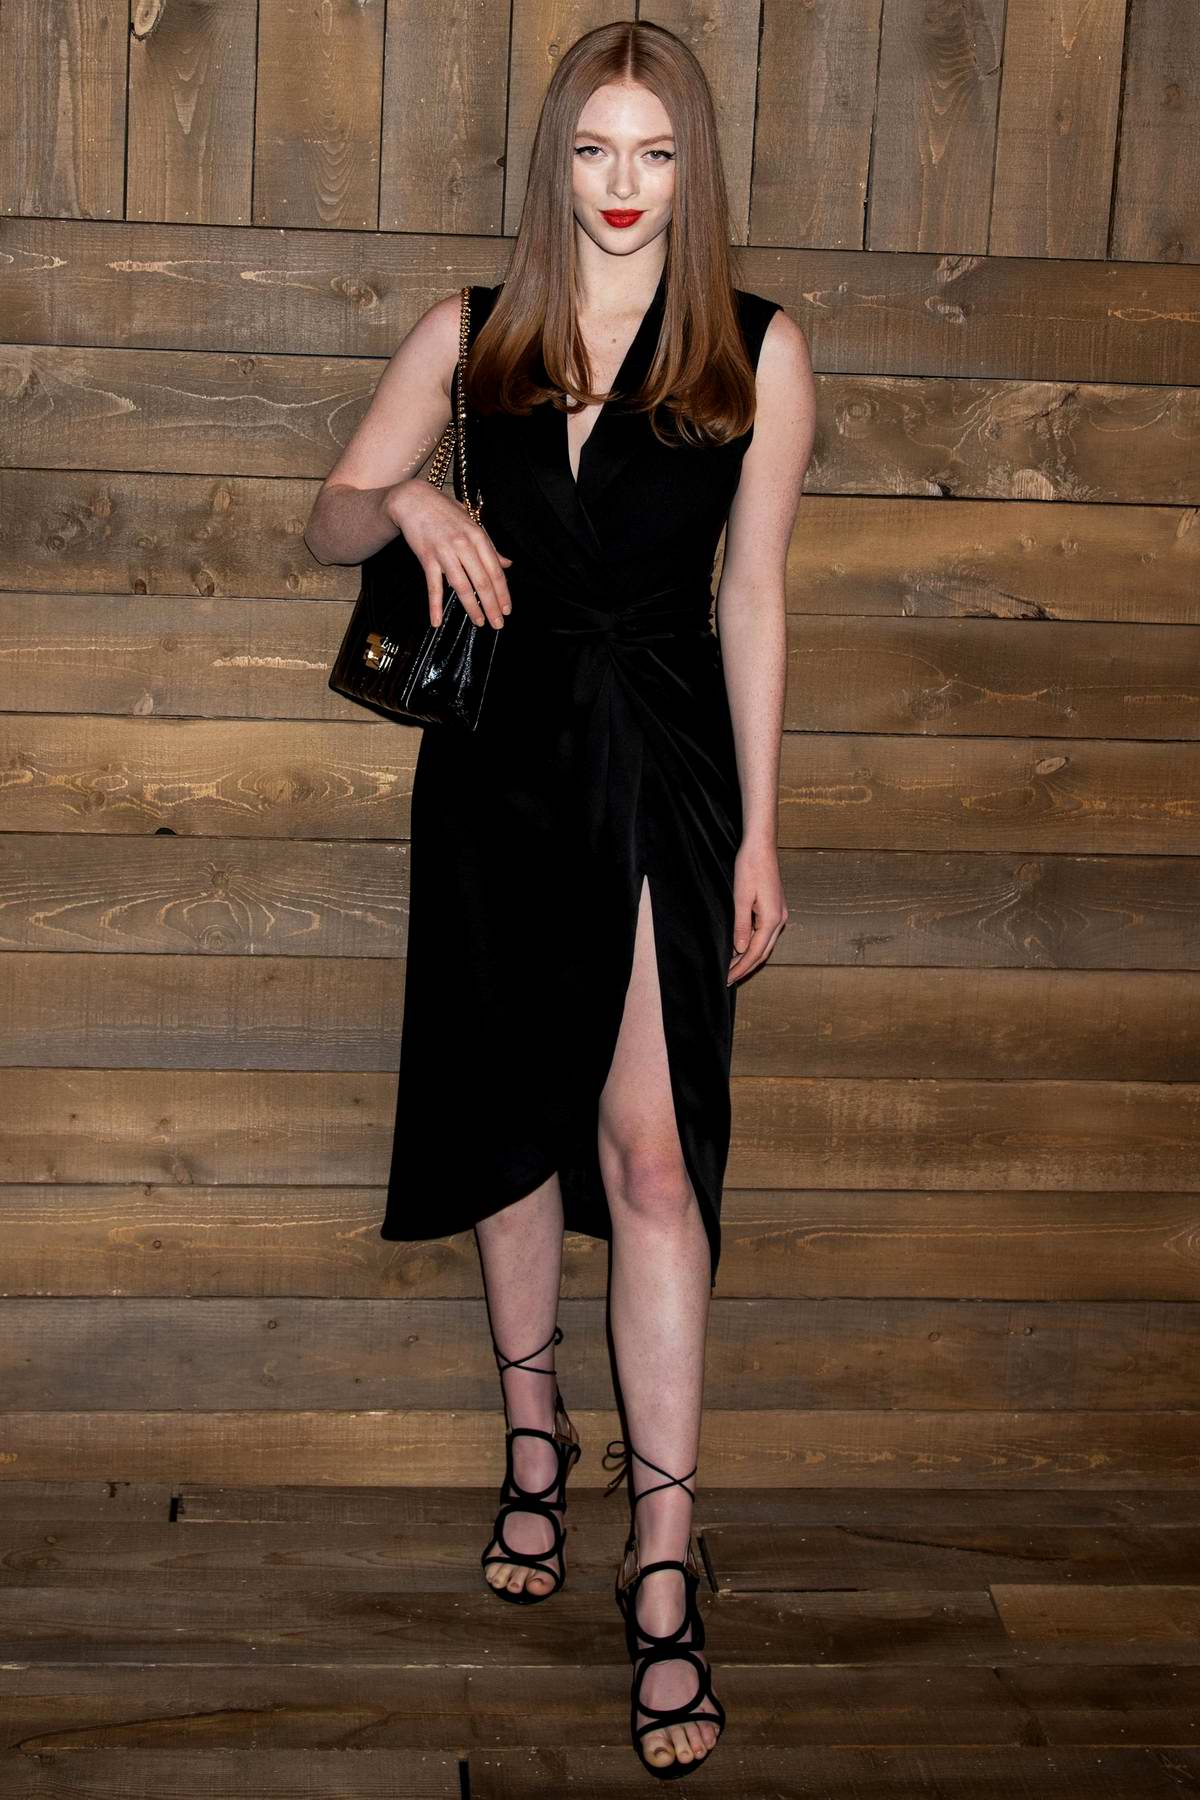 Larsen Thompson attends the Michael Kors show during NYFW 2020 in New York City